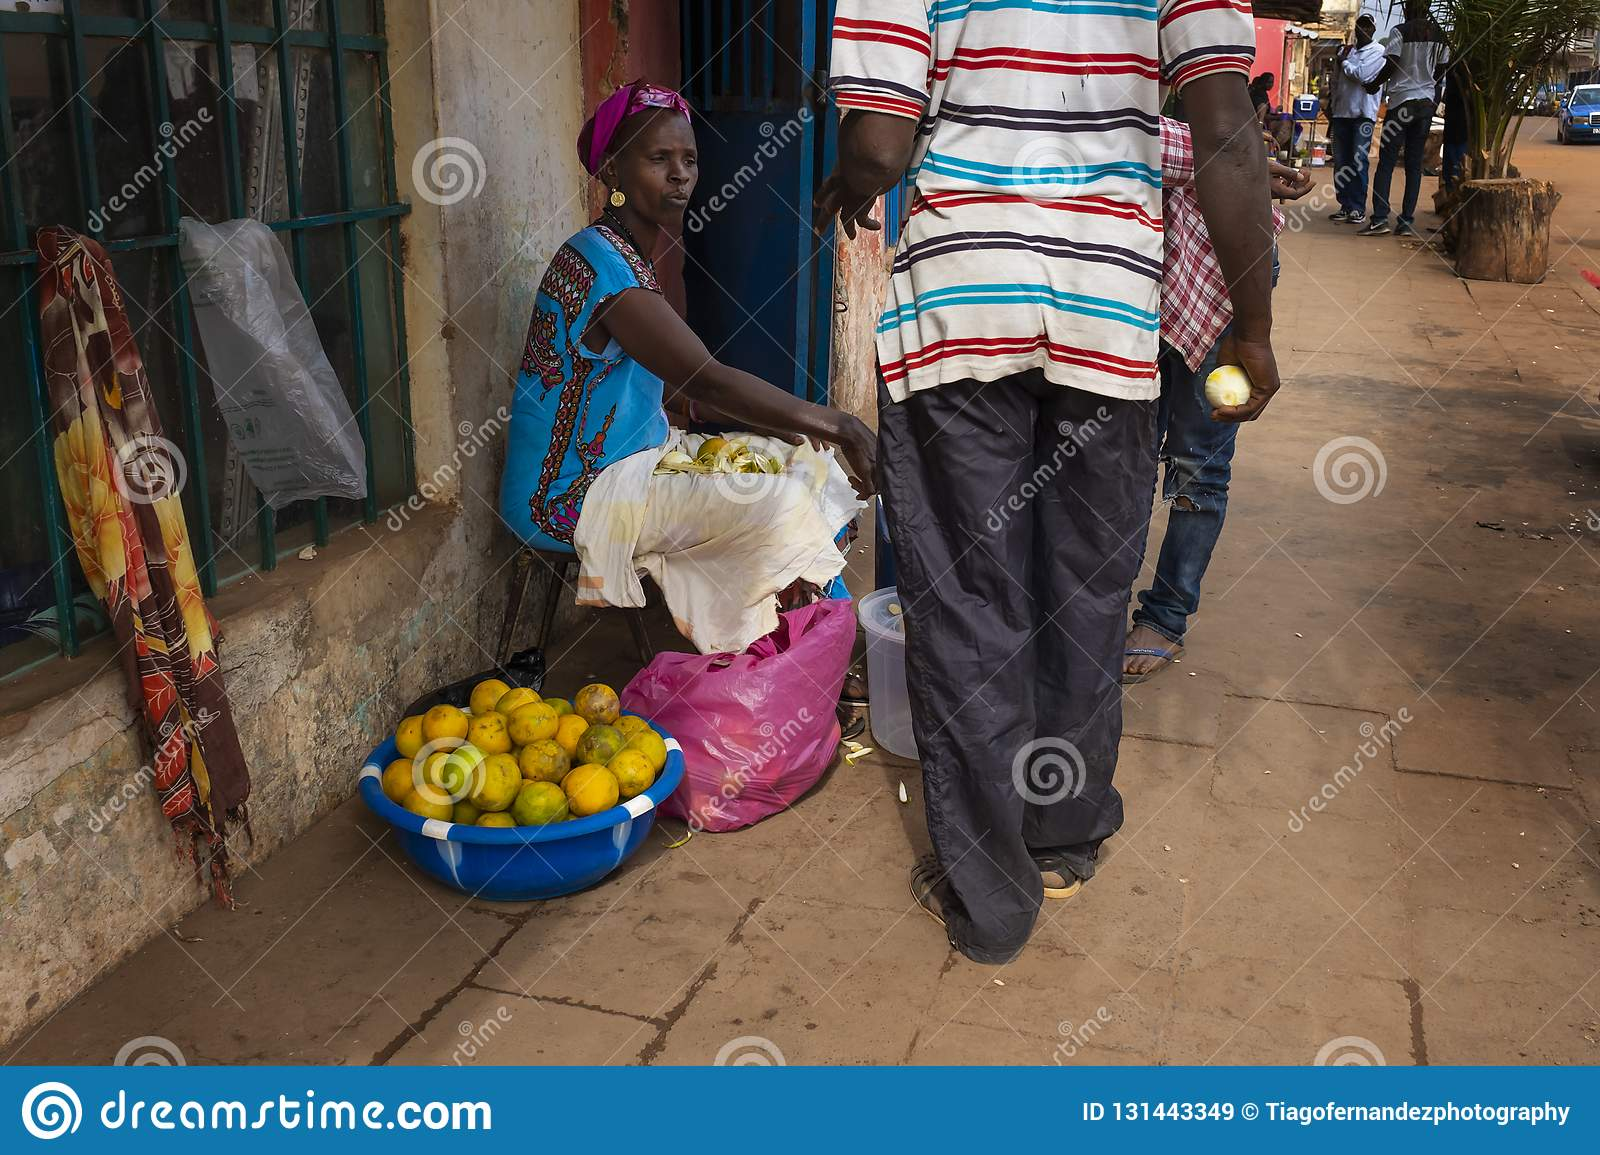 Street scene in the city of Bissau with a woman selling oranges, in Guinea-Bissau, West Africa